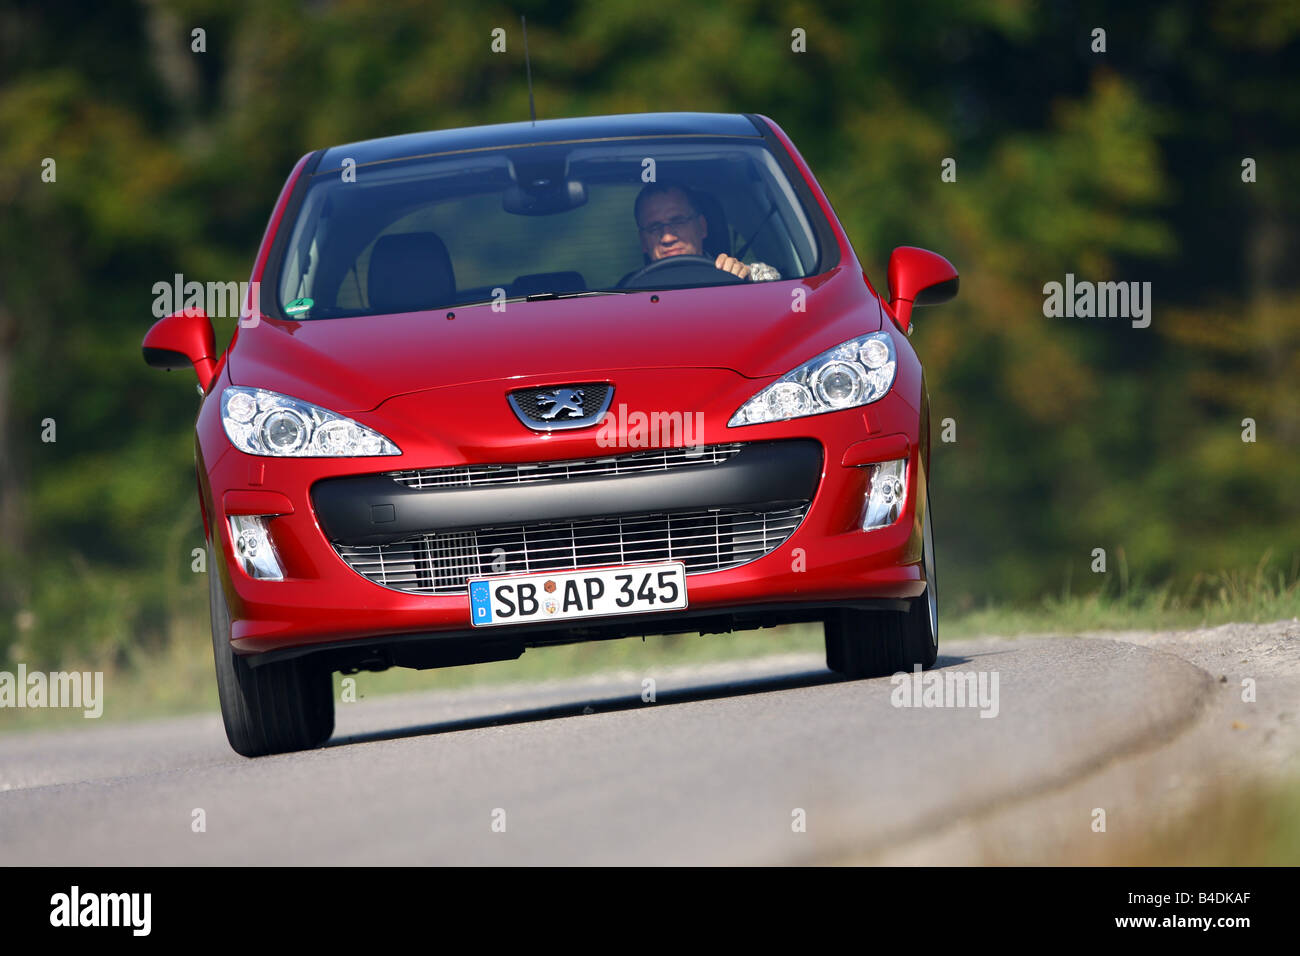 Peugeot 308 150 THP Sport Plus, model year 2007-, red, driving, diagonal from the front, frontal view, country road Stock Photo